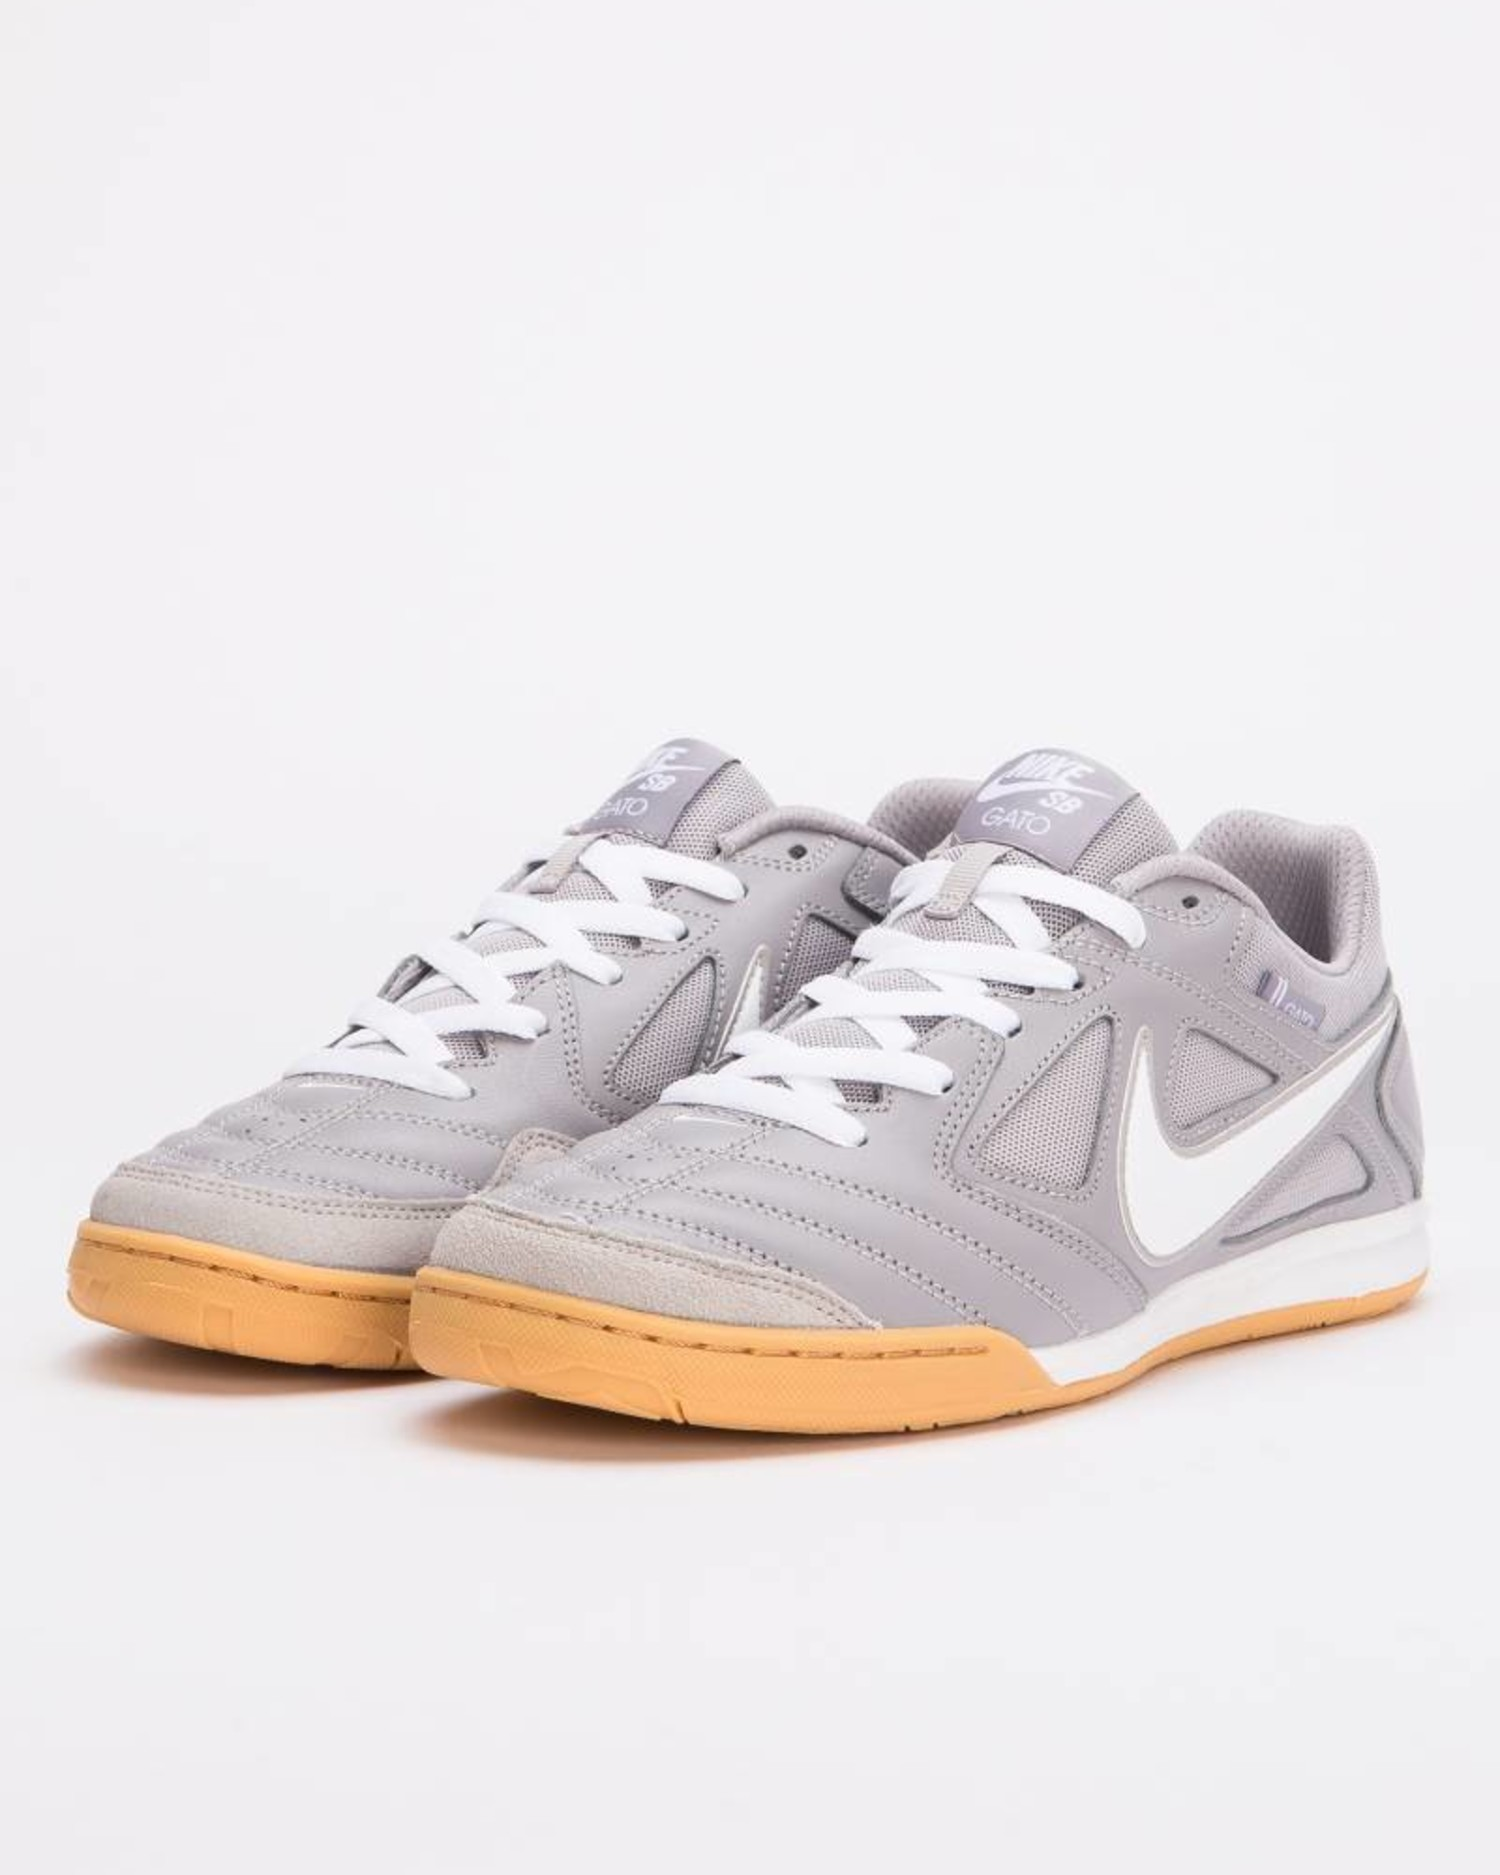 Nike Sb Gato Atmosphere grey/white-atmosphere grey